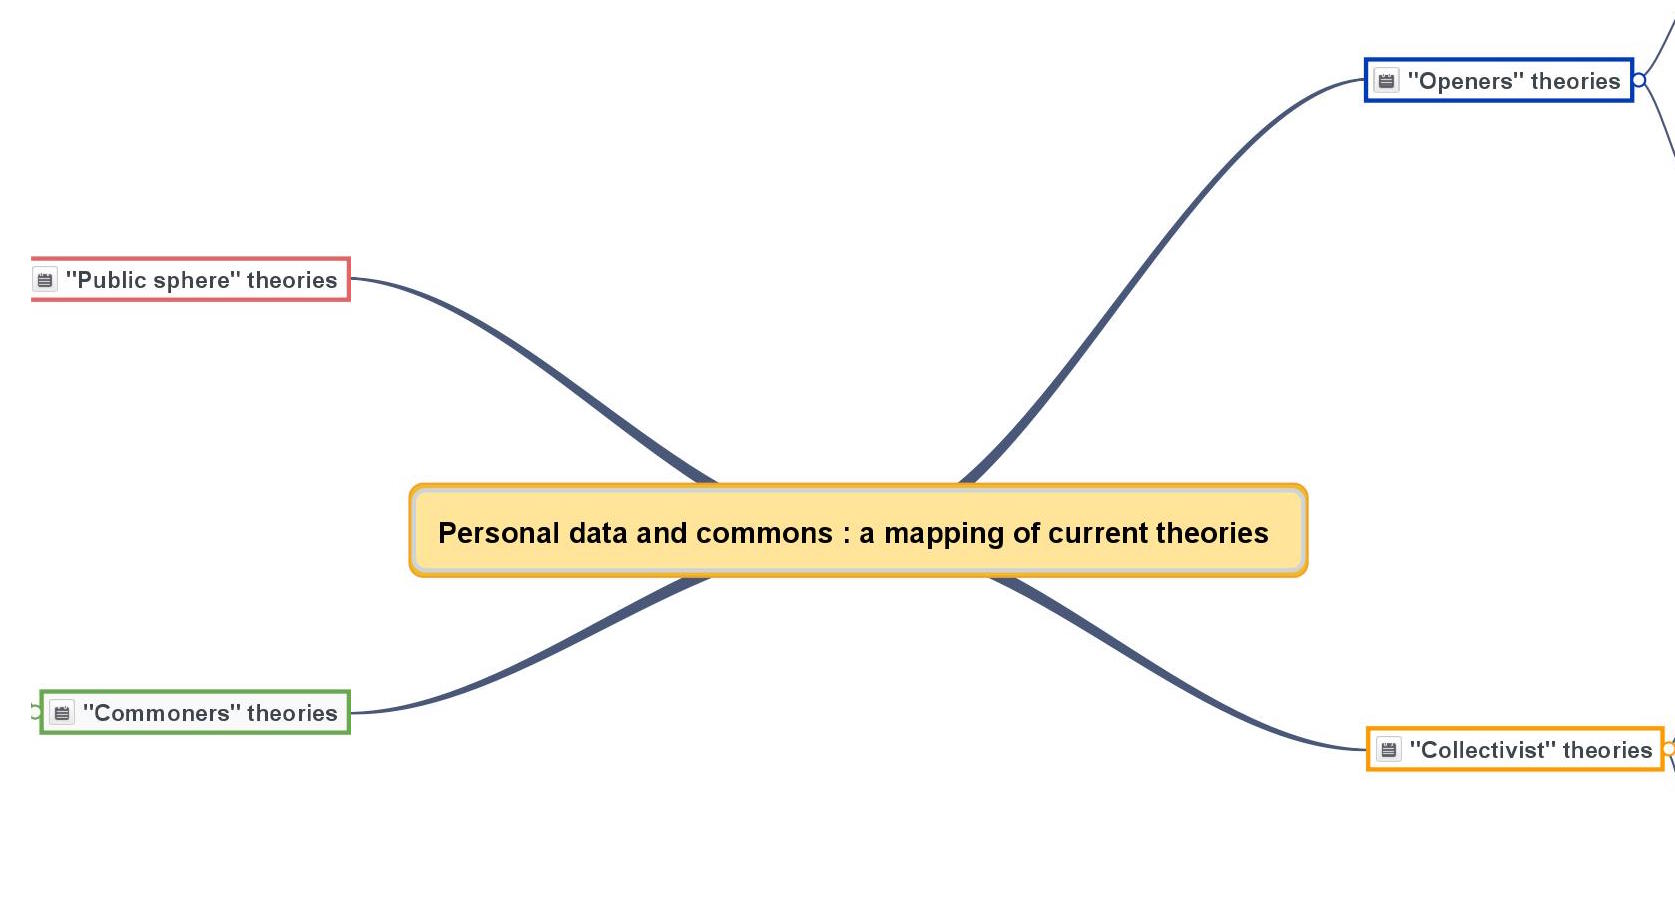 Personal data and commons : a mapping of current theories